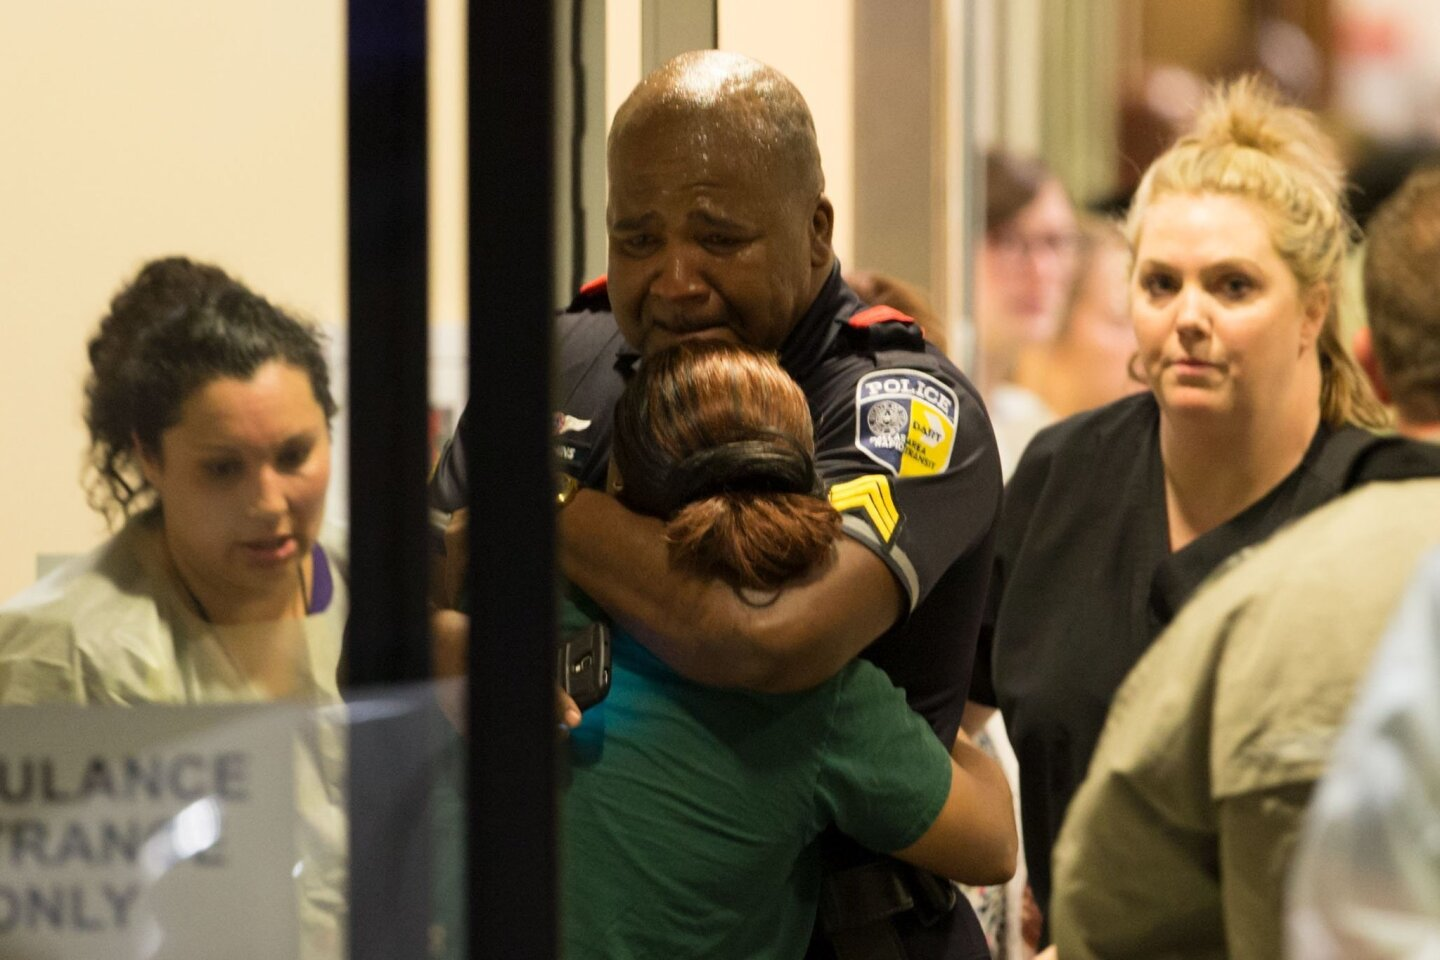 A Dallas Area Rapid Transit police officer receives comfort at the Baylor University Hospital emergency room entrance Thursday, July 7, 2016, in Dallas. Police say one rapid-transit officer has been killed and three injured when gunfire erupted during a protest in downtown Dallas over recent fatal